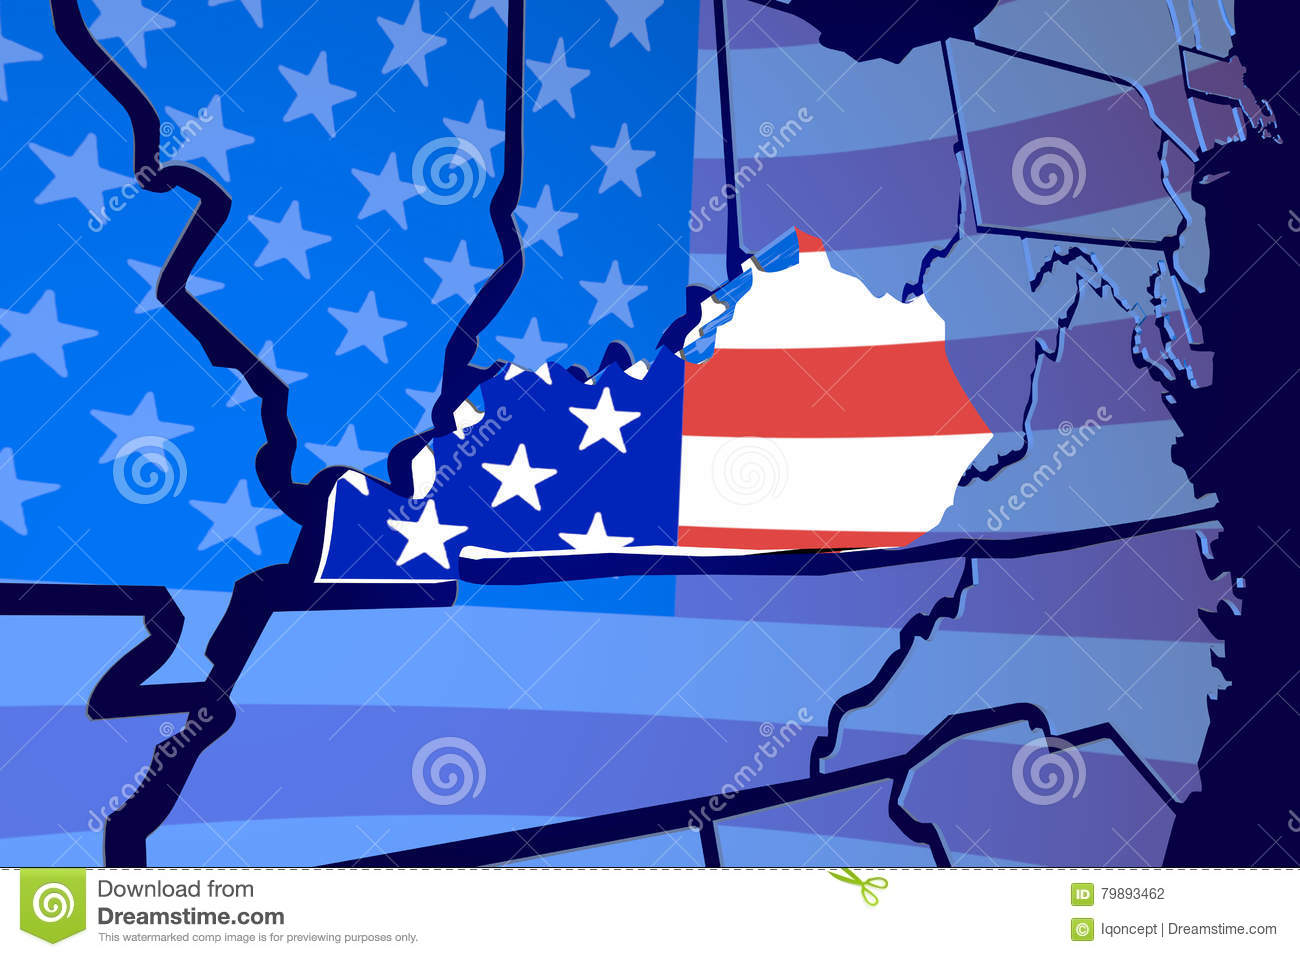 Kentucky KY State Map USA United States America Flag 3d Illustration on black kentucky map, funny kentucky map, cartoon kentucky map, print kentucky map, 3d kentucky flag, 3d kentucky outline, 3d kentucky poster, hd kentucky map,